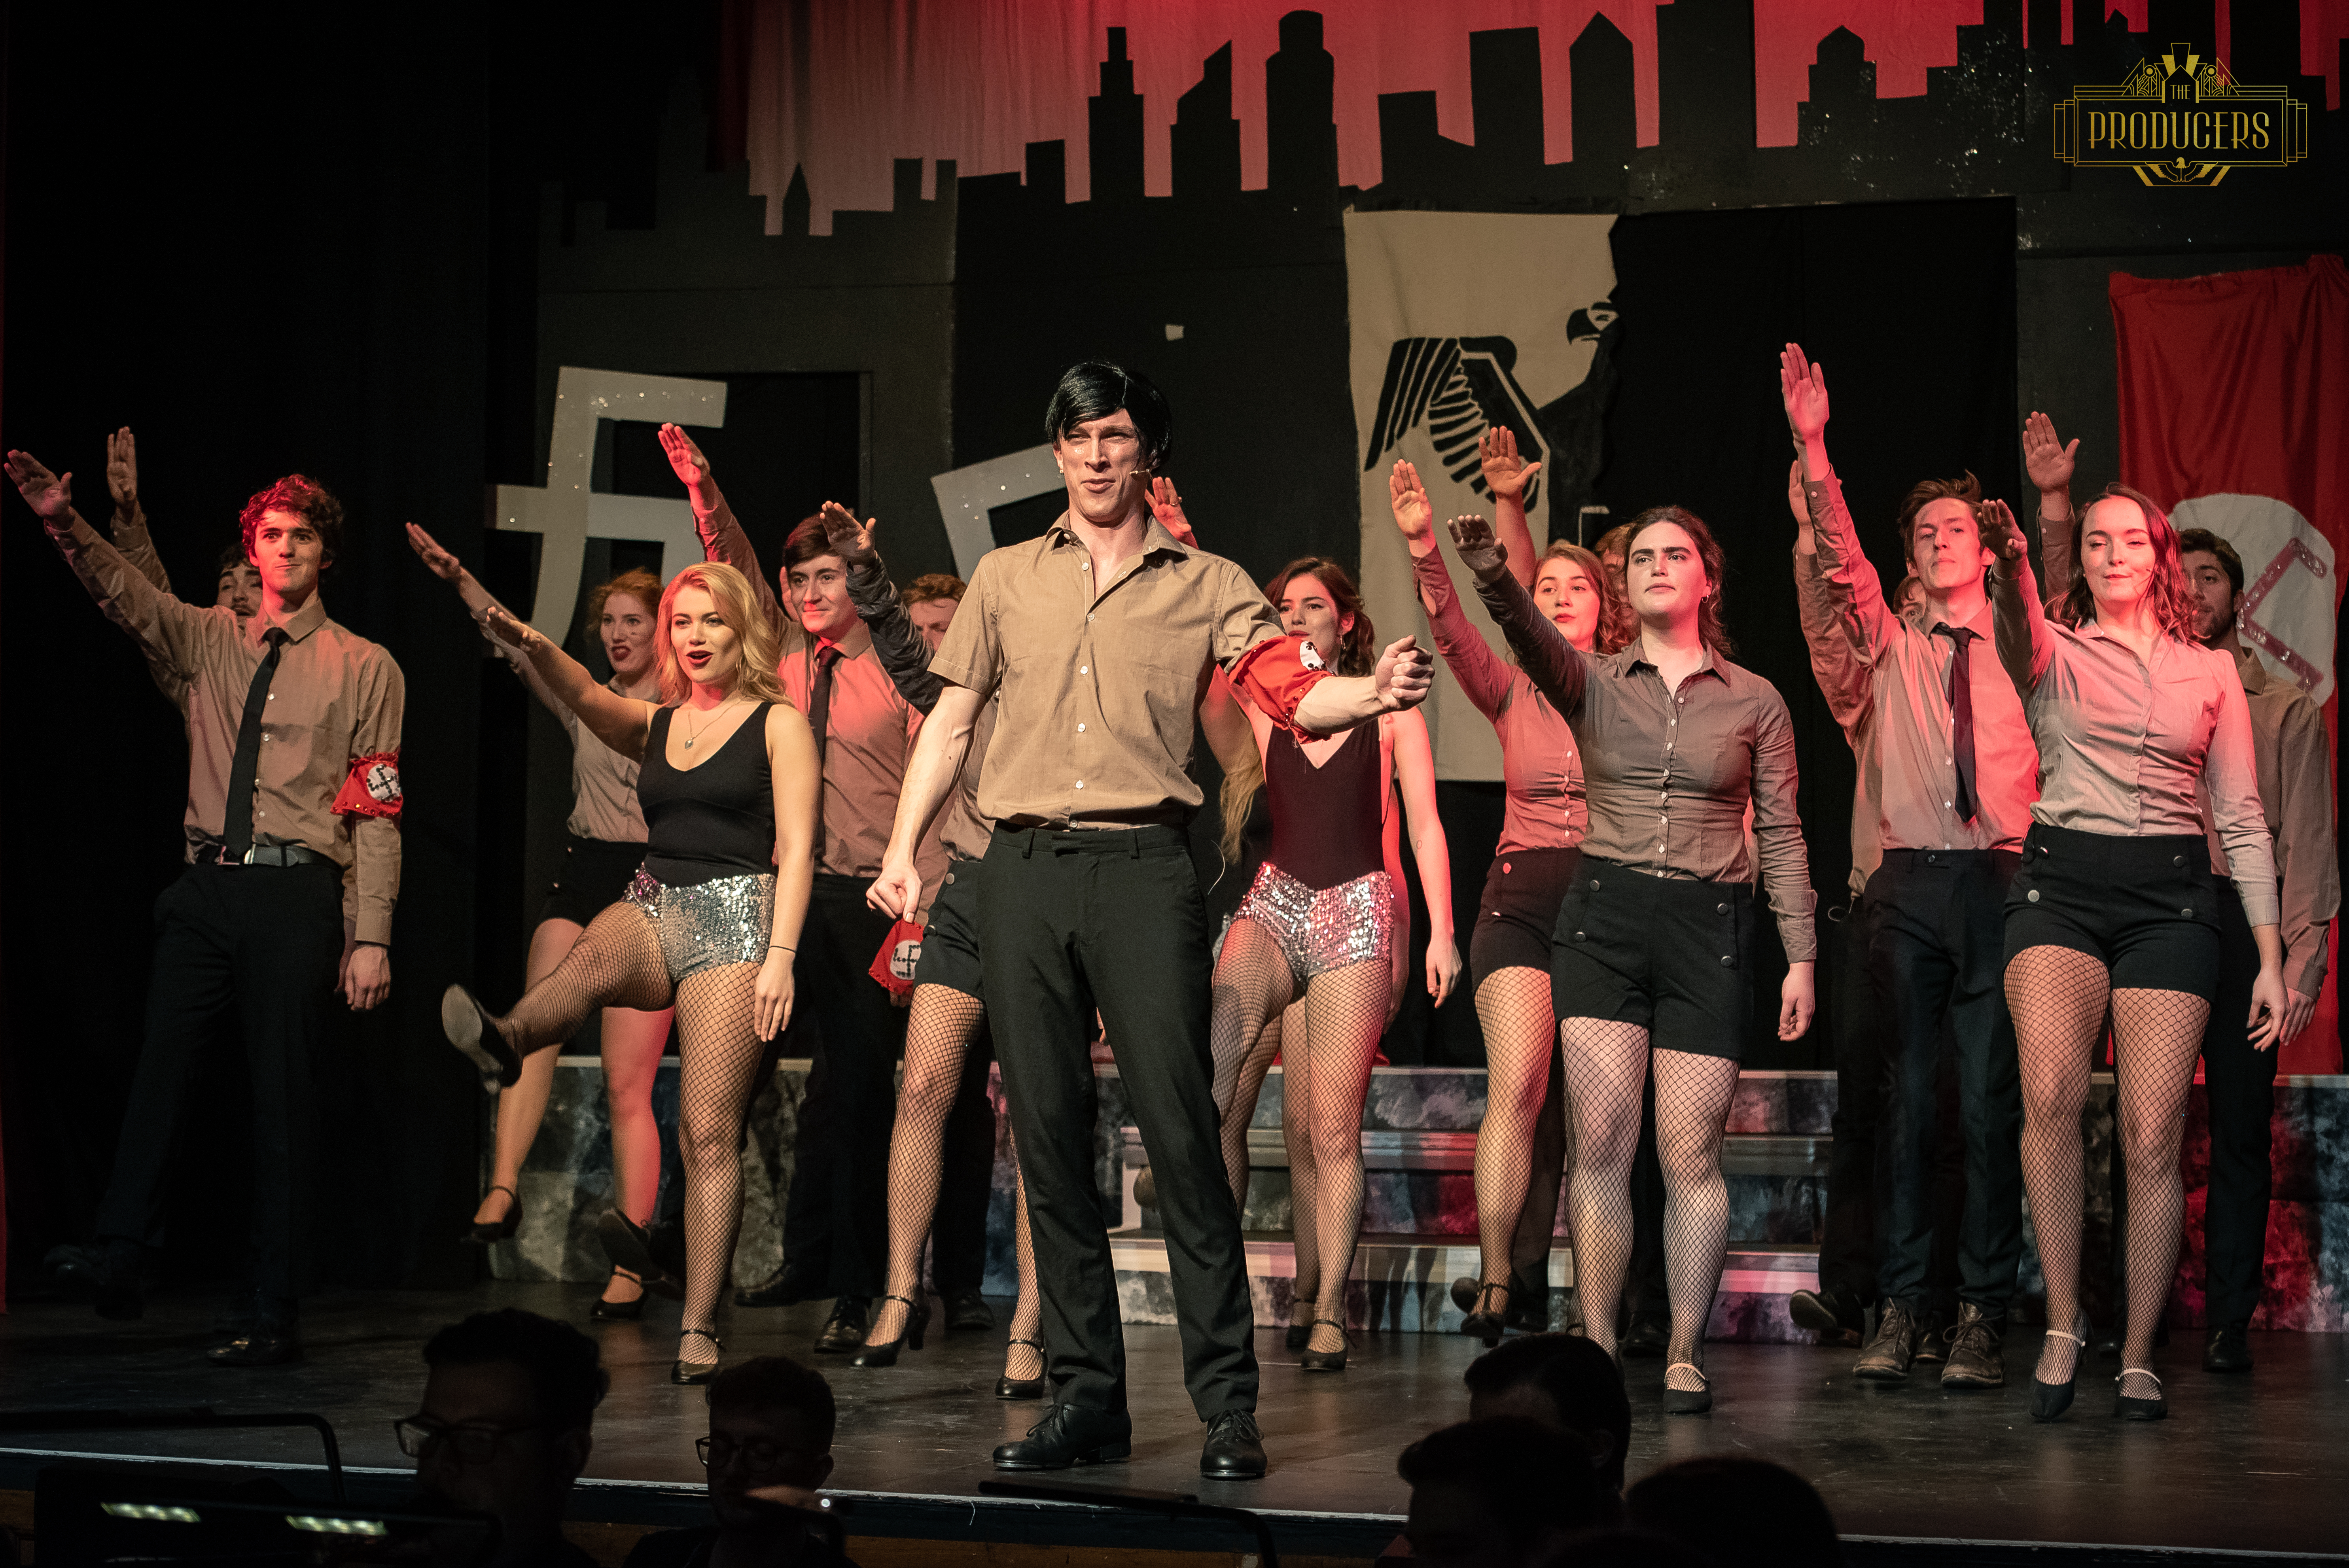 The Producers – Mumble Musicals